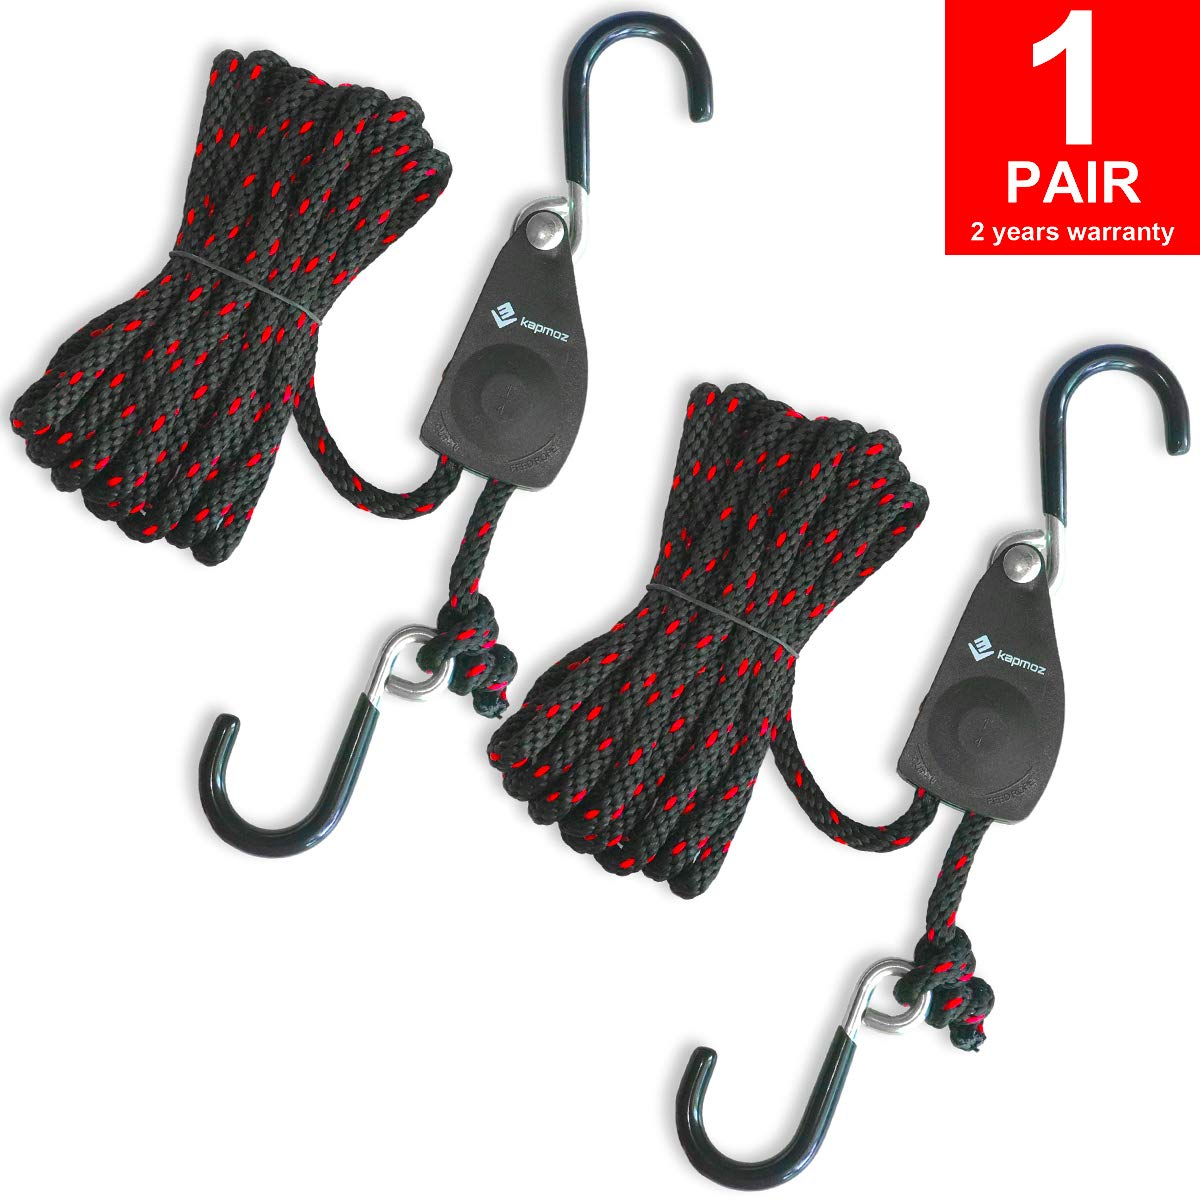 LE KAPMOZ Kayak Tie Down Straps Canoe Bow and Stern Heavy Duty Cargo Ratchet Pulley Rope Hanger (Black Vinyl Coated, 12) by LE KAPMOZ